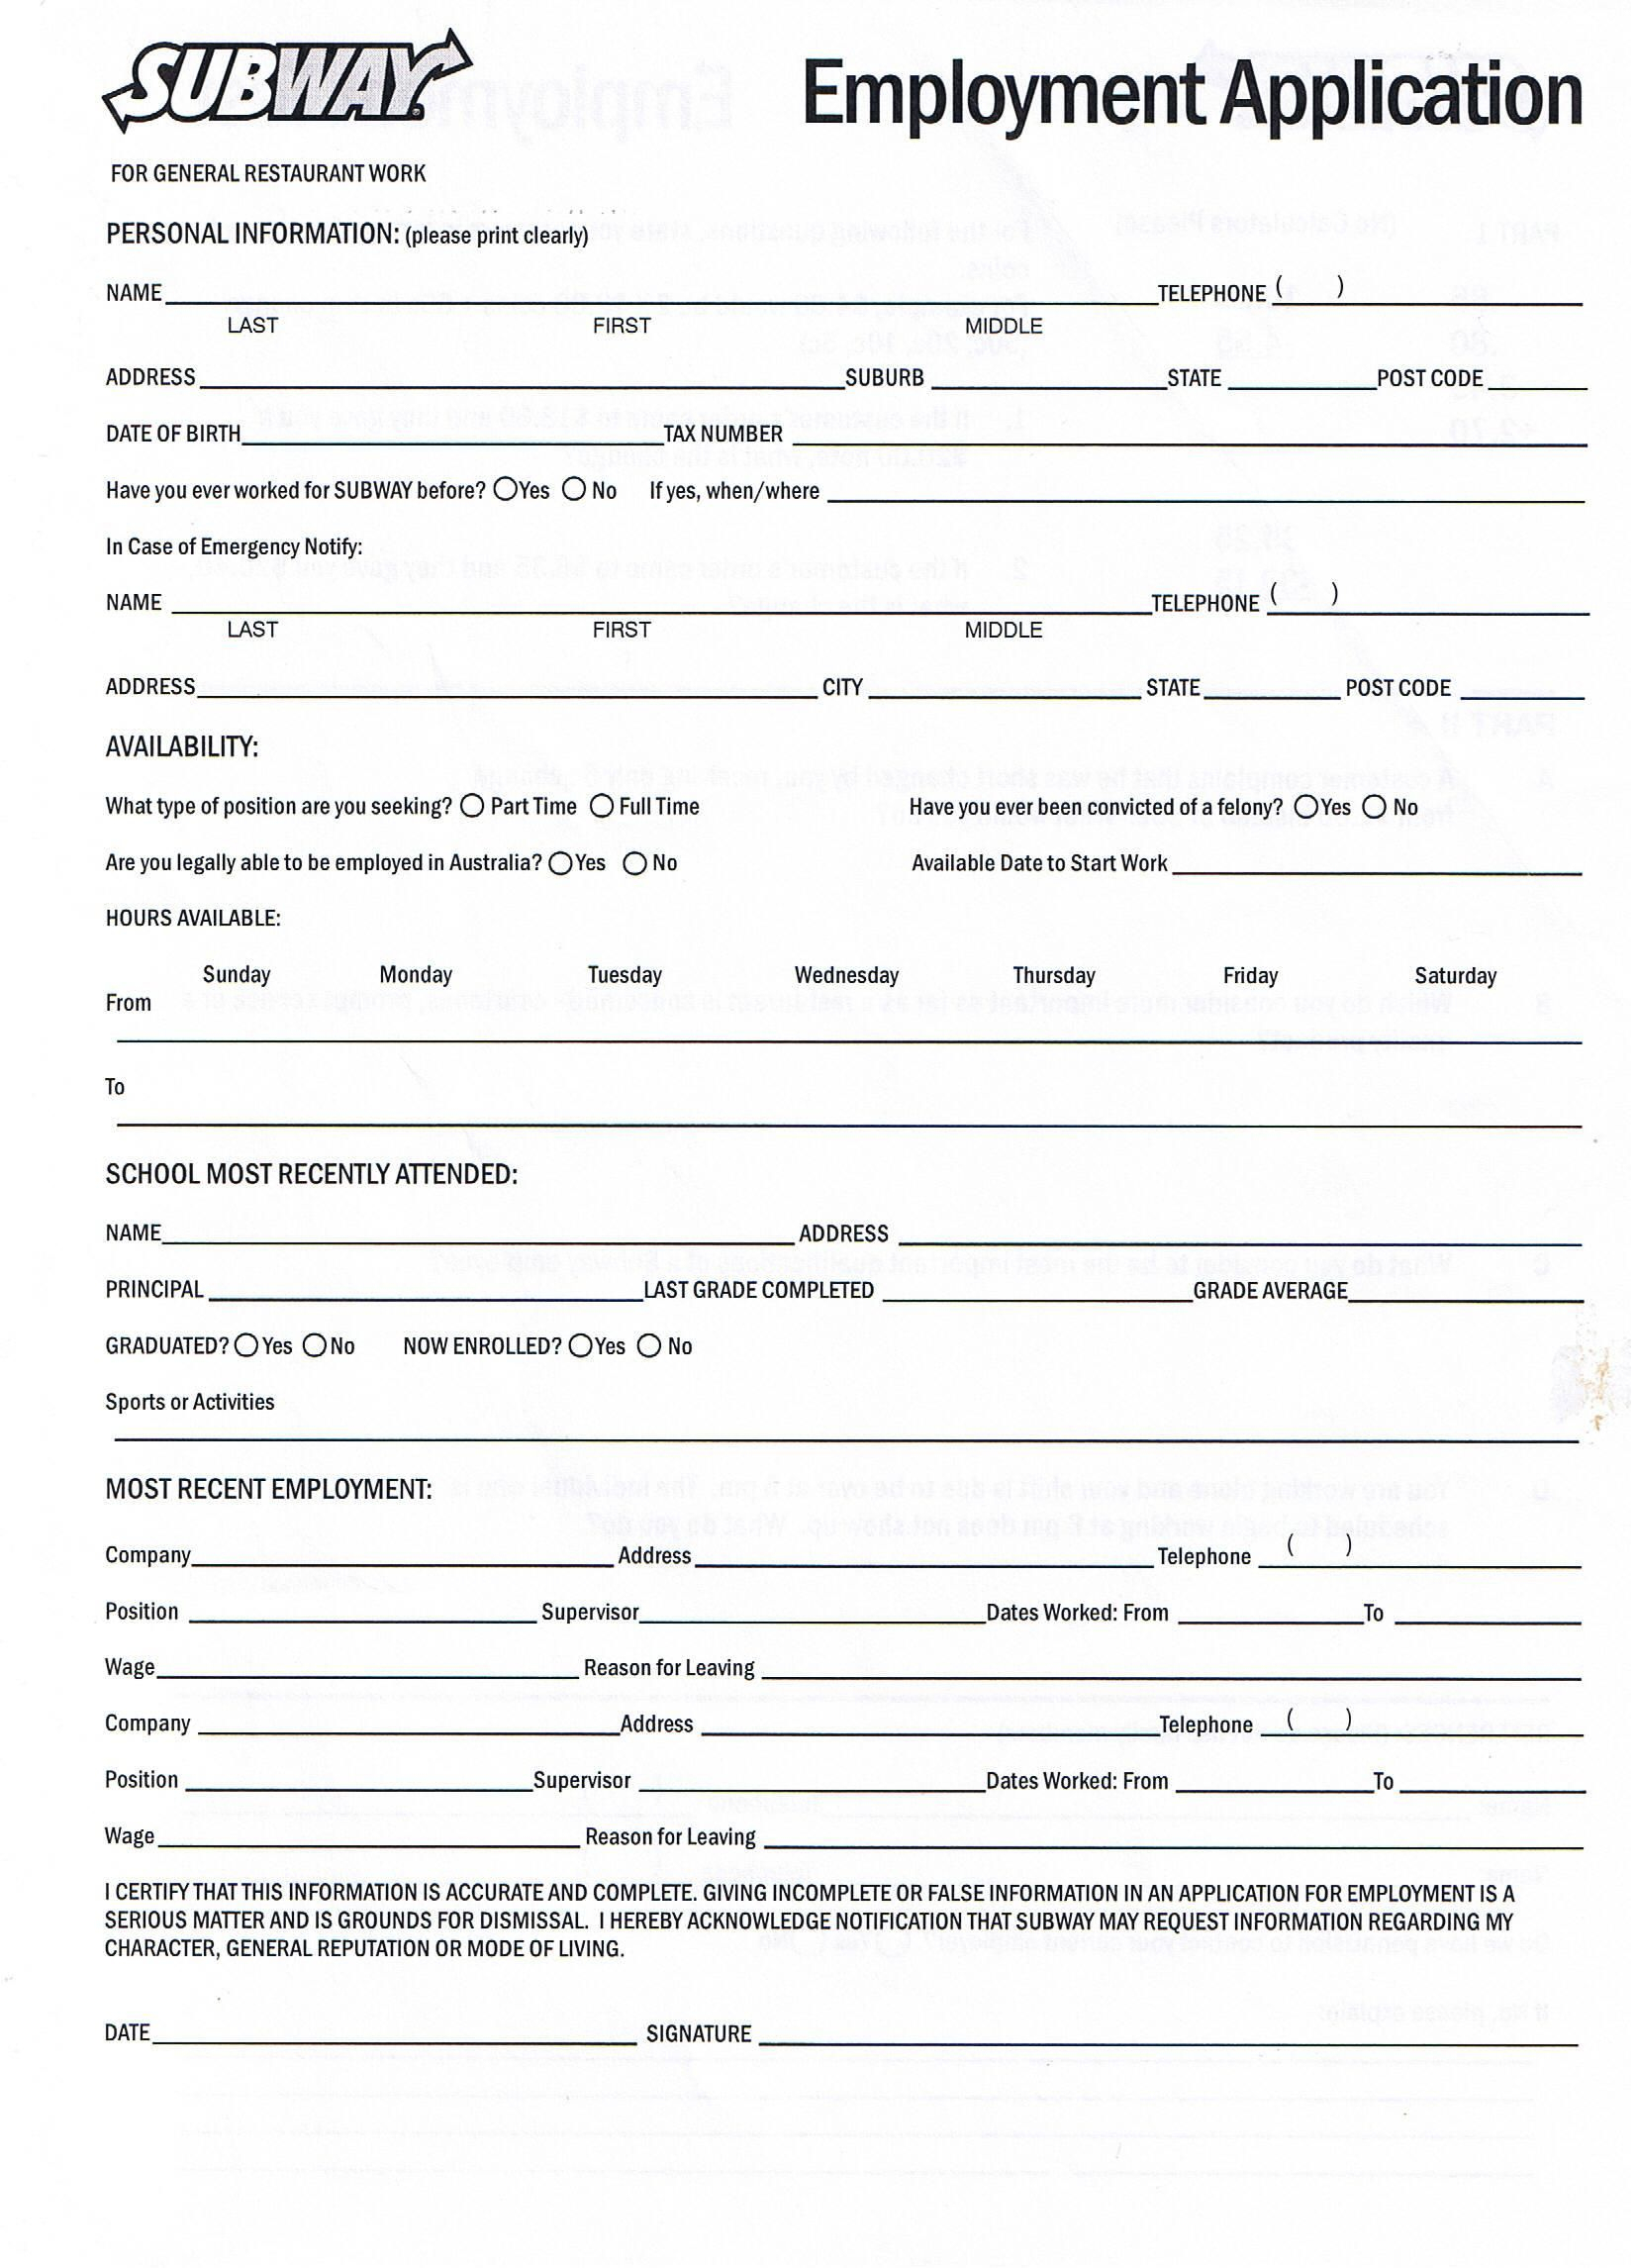 Printable Job Application Forms Online Forms, Download And Print - Application For Employment Form Free Printable